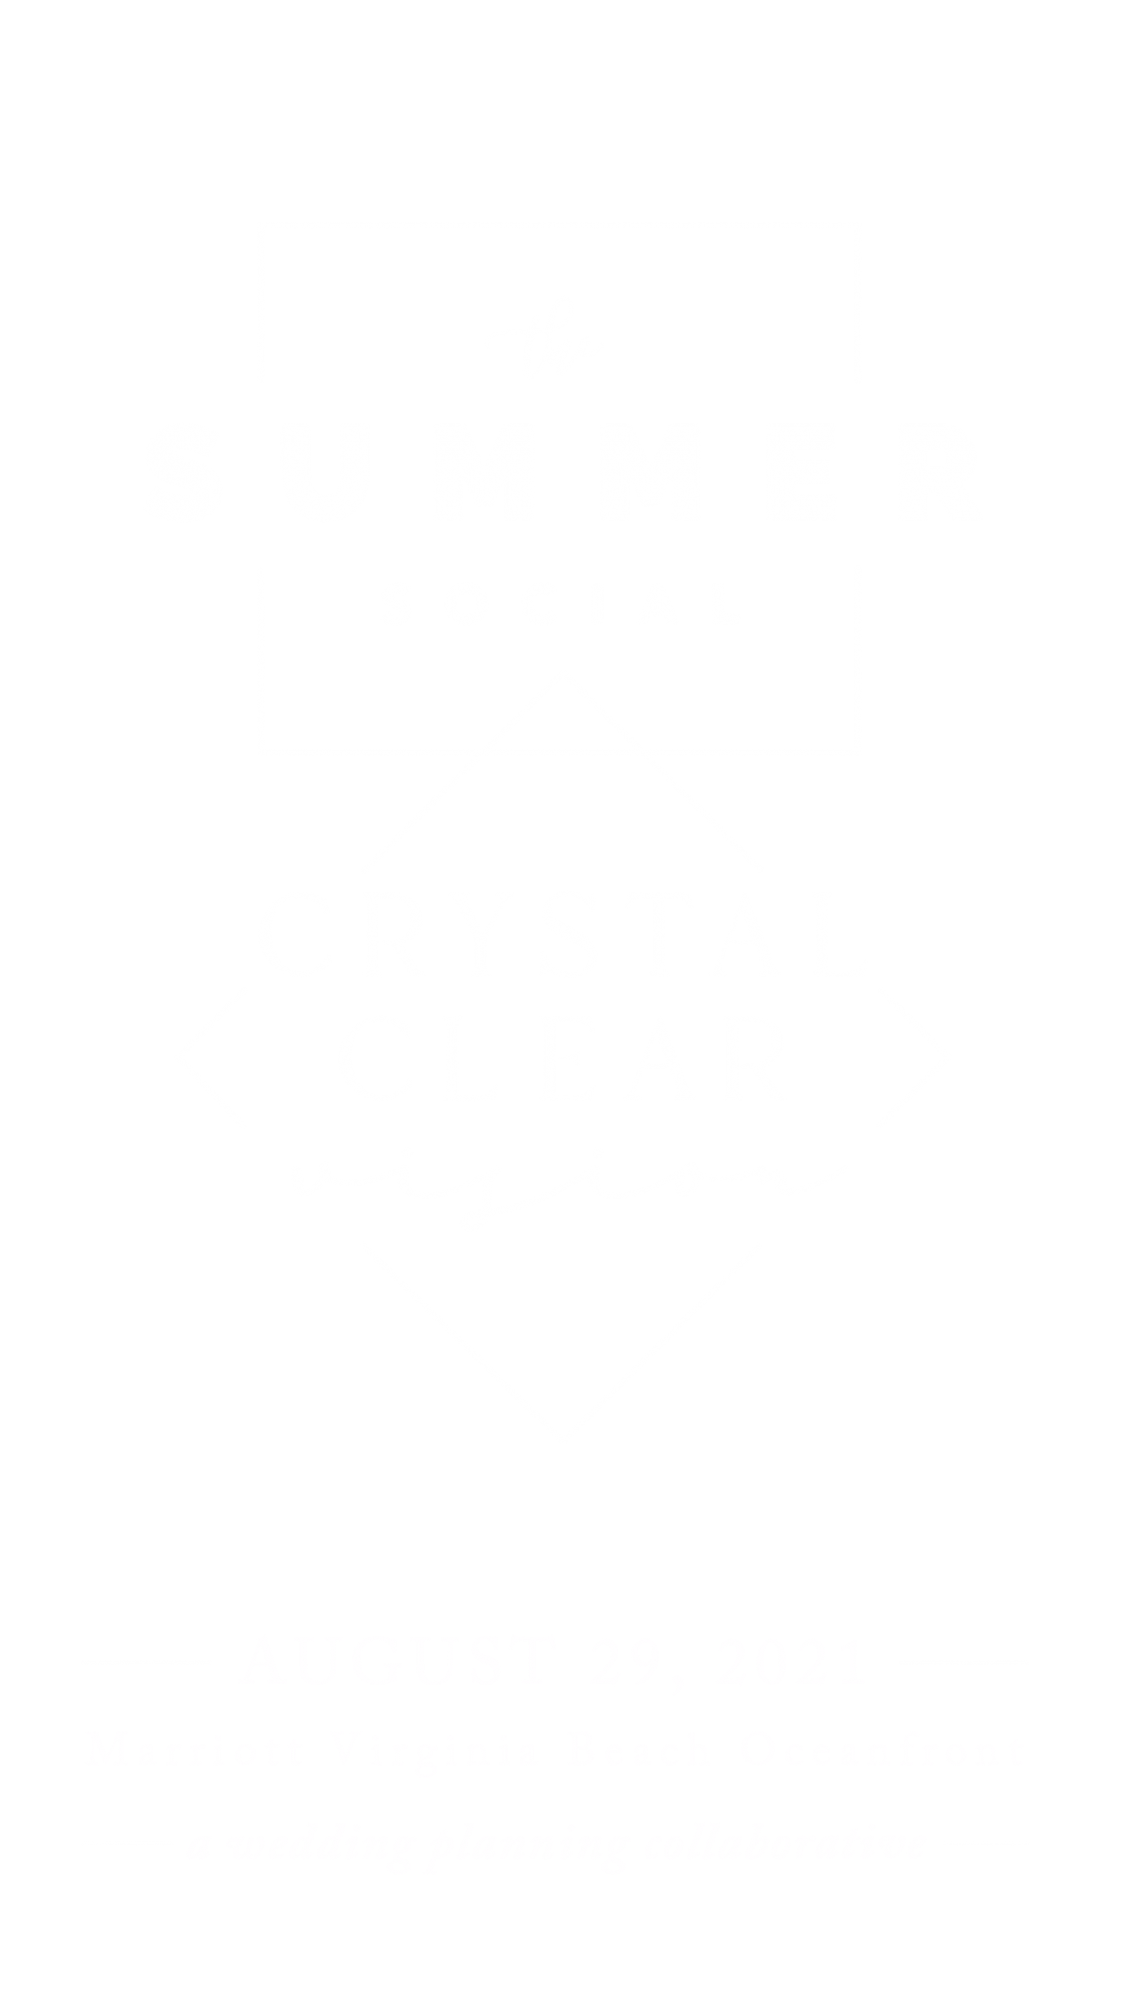 The Summer Social and Crystal Clear Vision